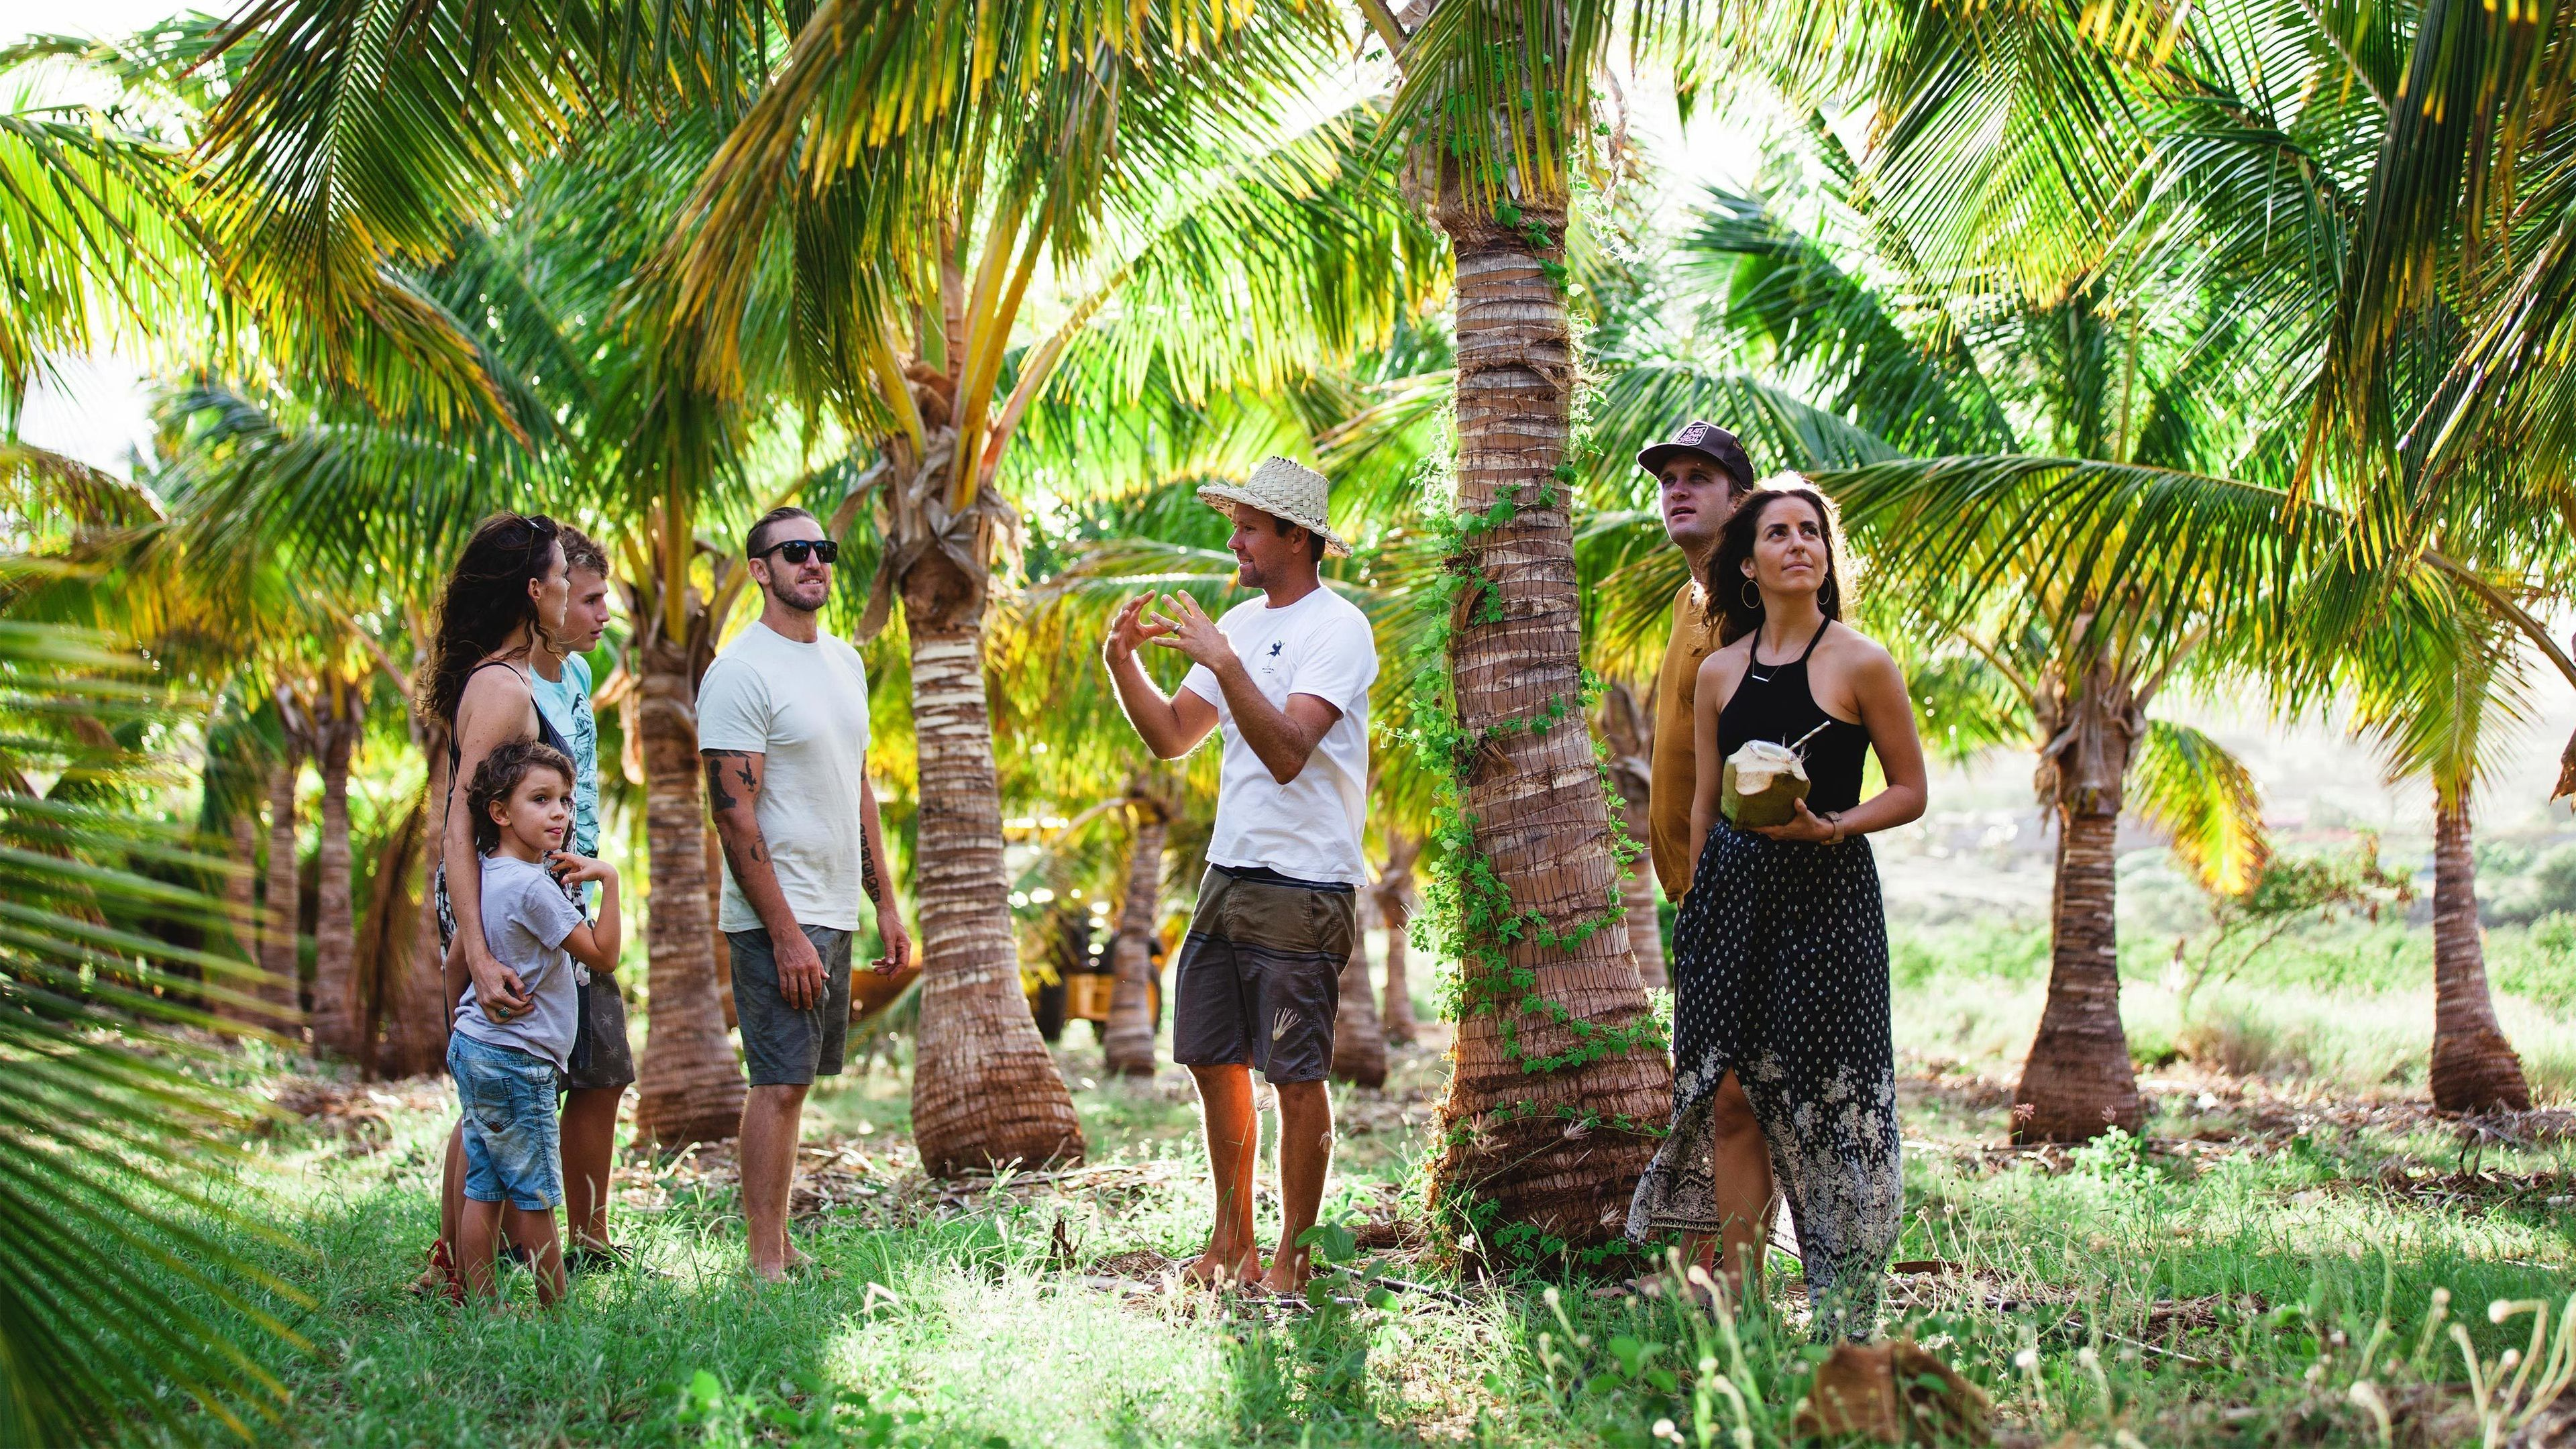 Tour group with guide on a coconut farm on Maui